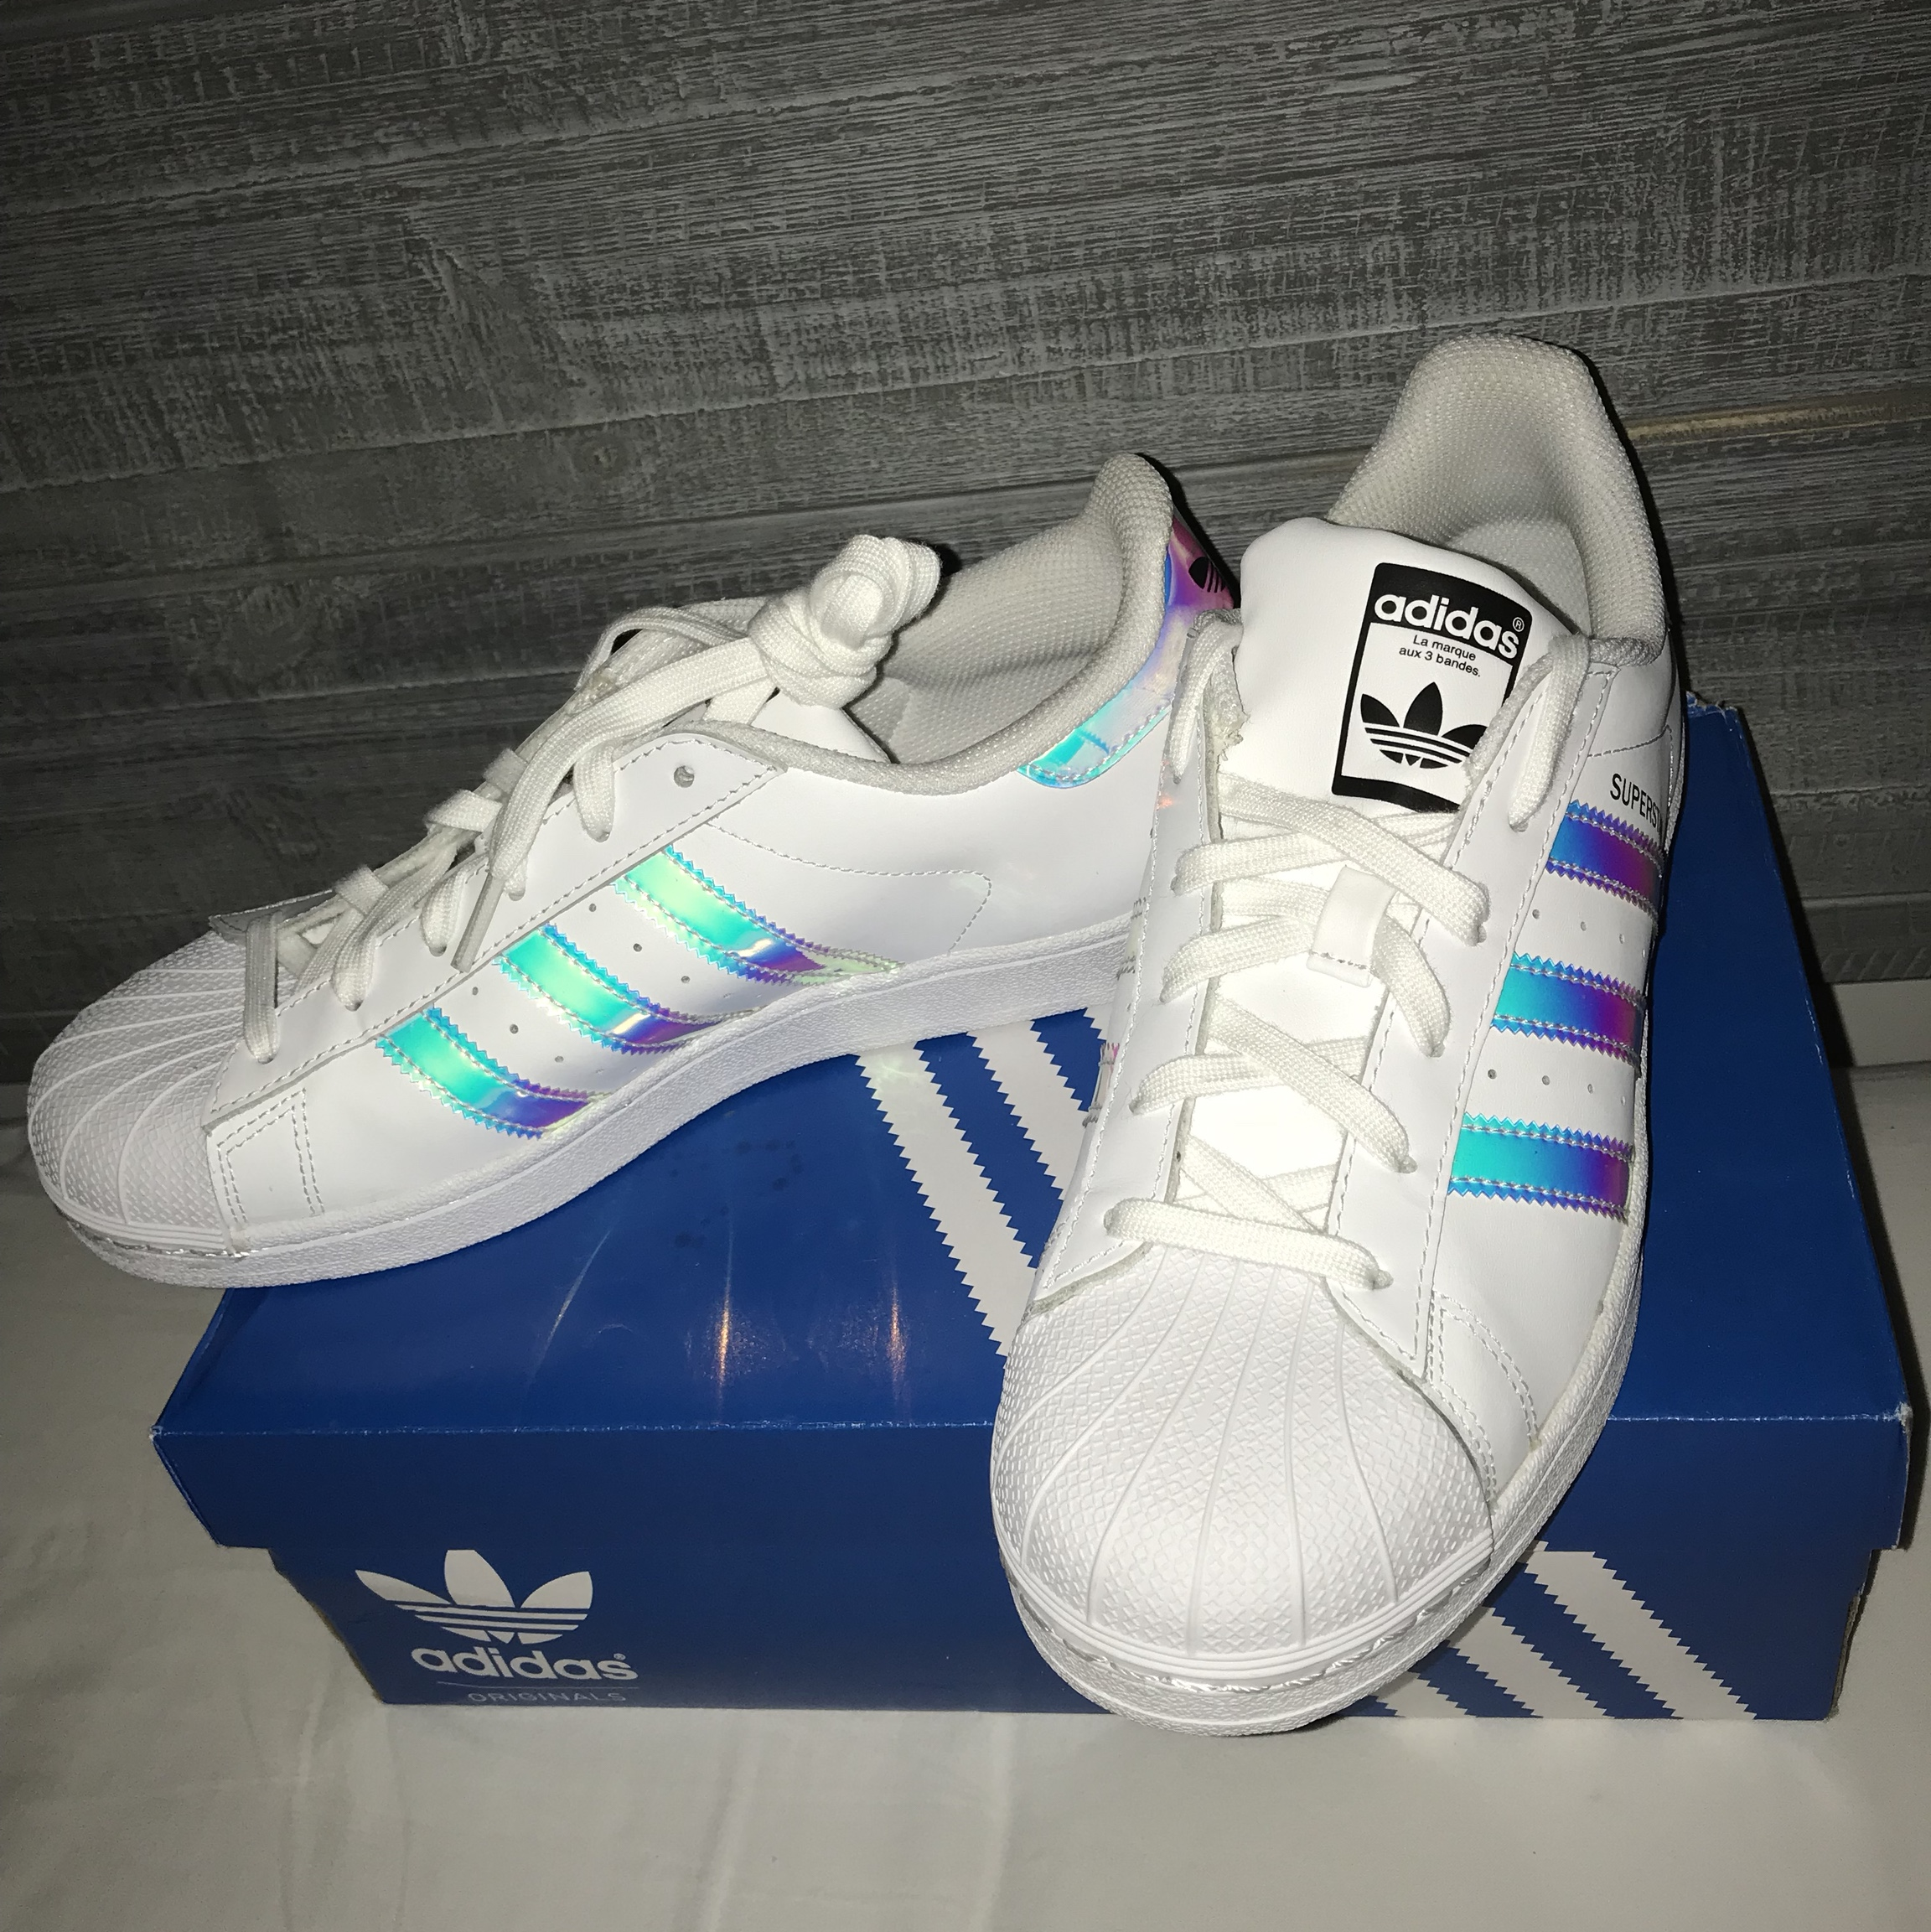 Adidas Superstar J Holographic Shoes